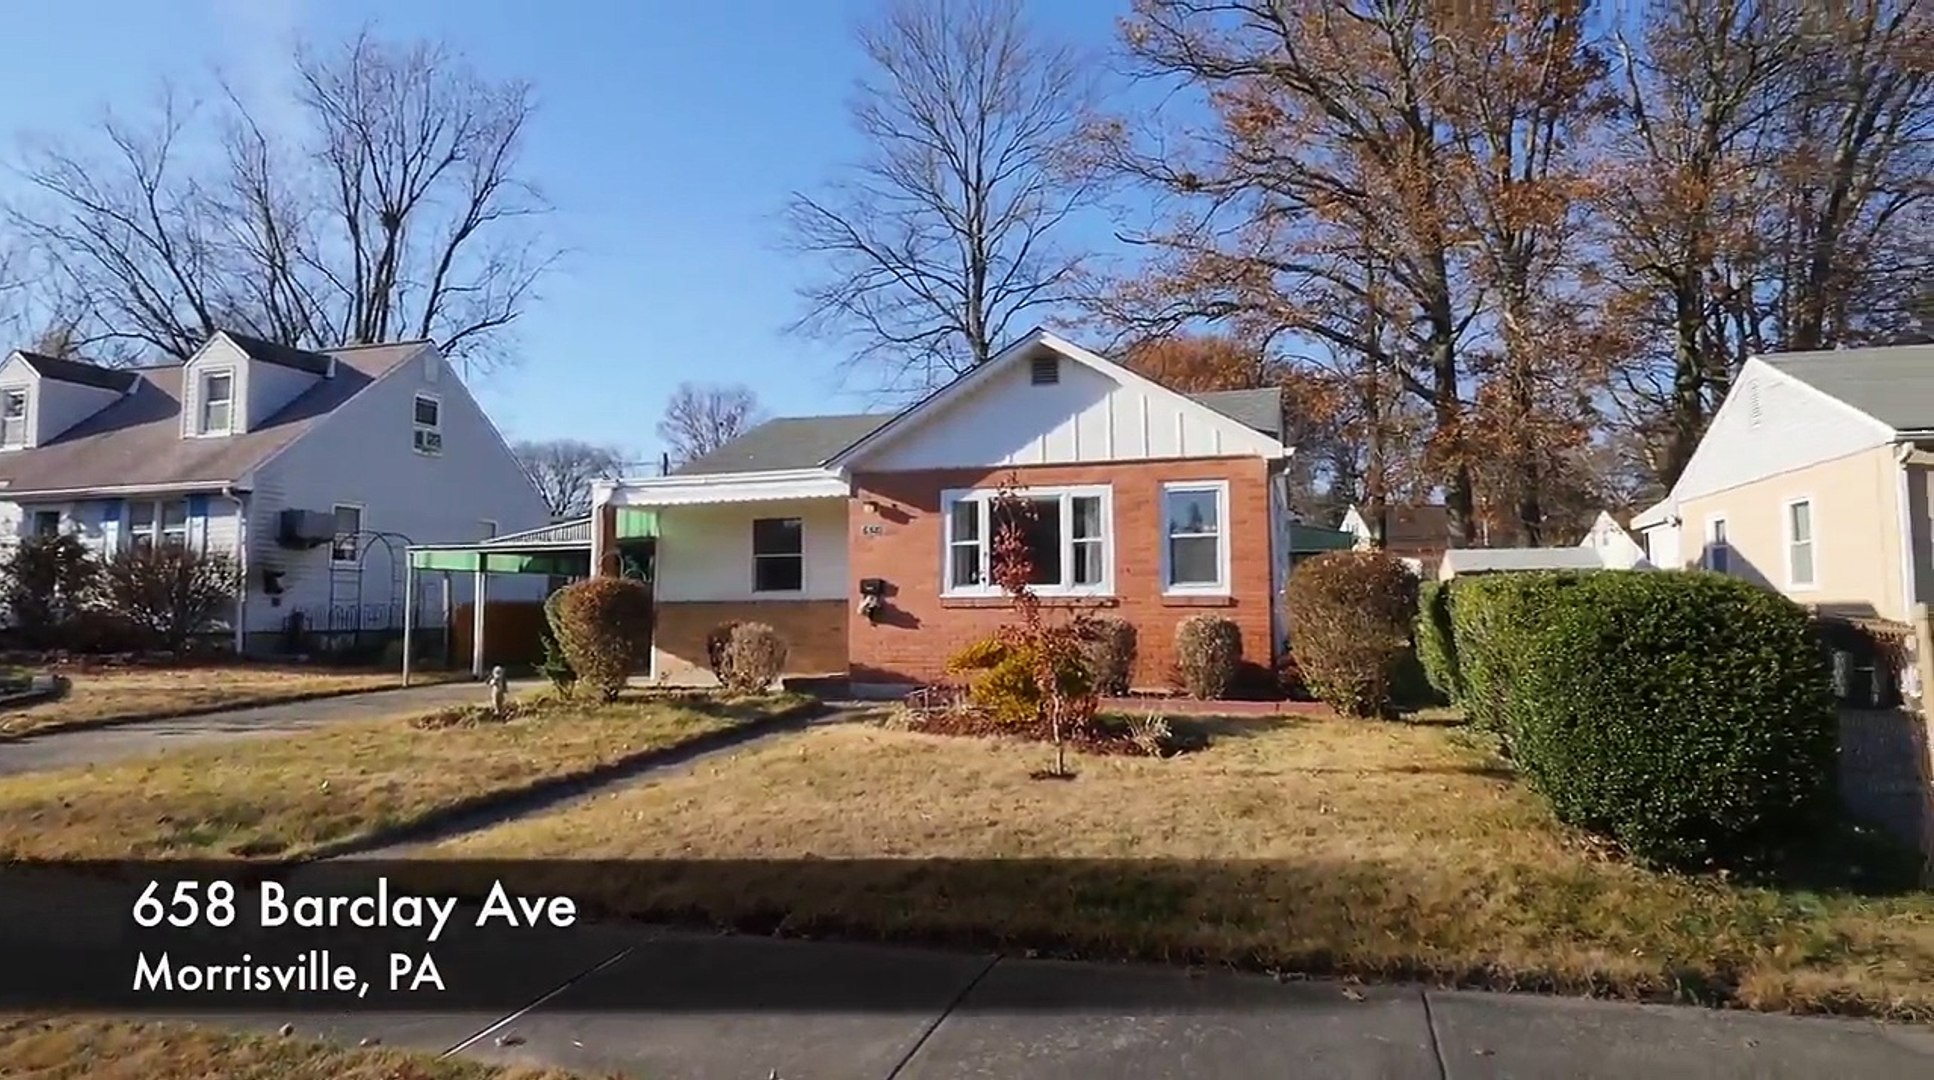 Home For Sale 3 Bed Move-In Ready 658 Barclay Ave Morrisville PA 19067 Bucks County Real Estate MLS